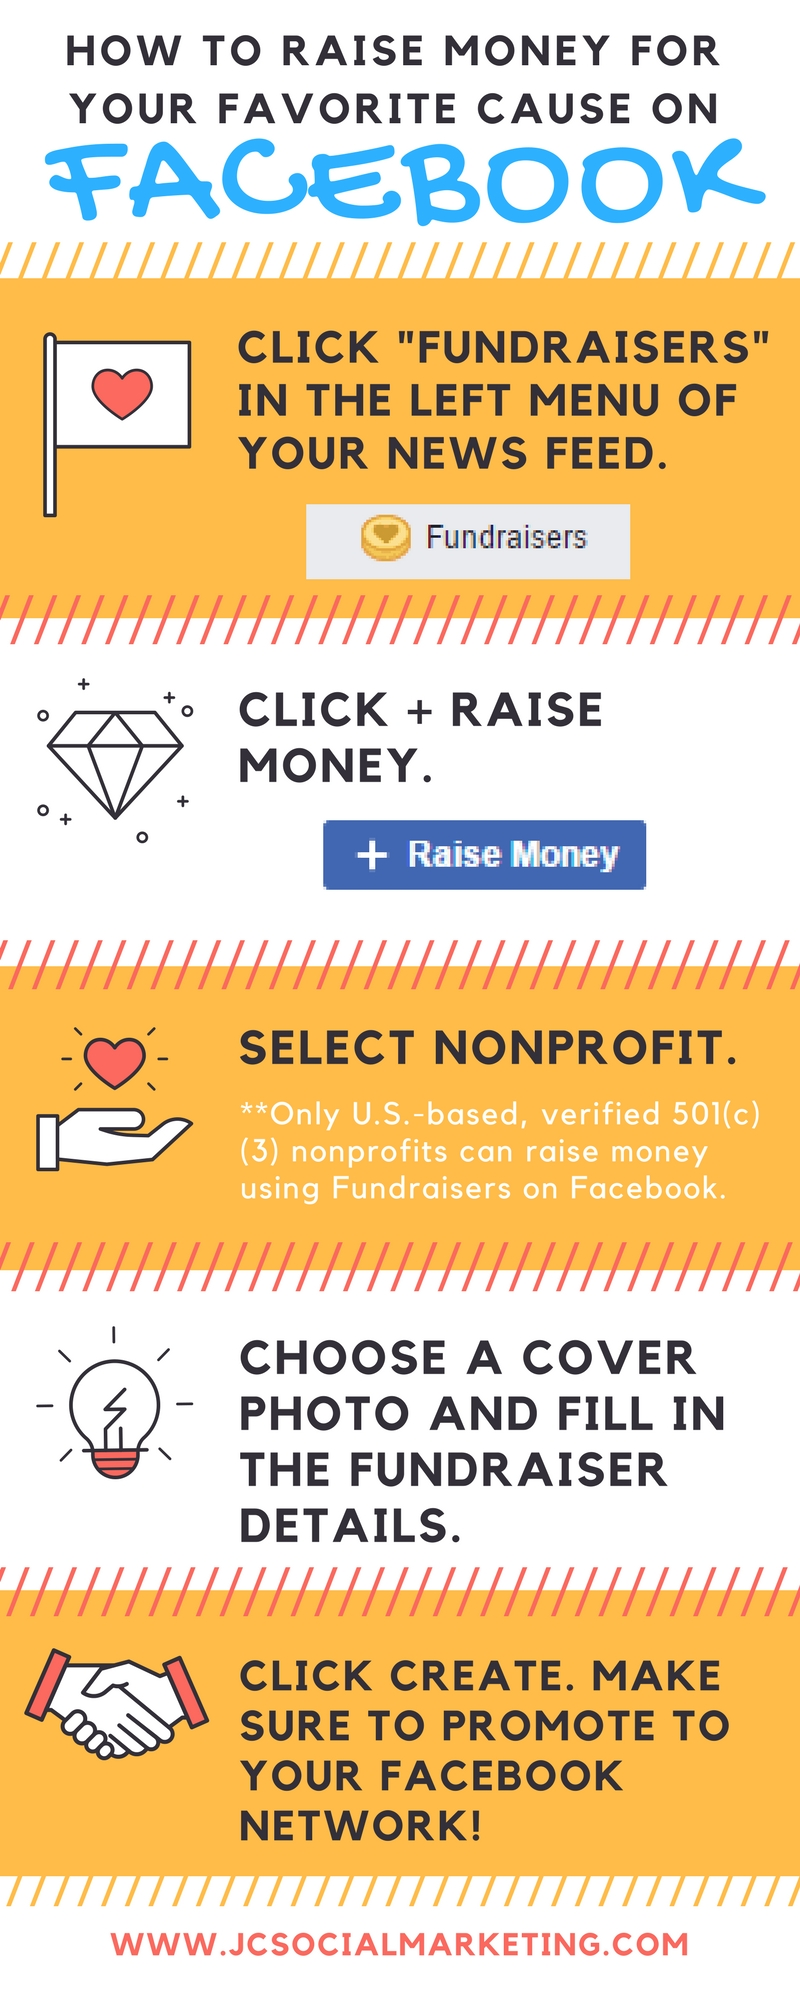 How-to-Raise-Money-For-Your-Favorite-Cause-On-Facebook.jpg